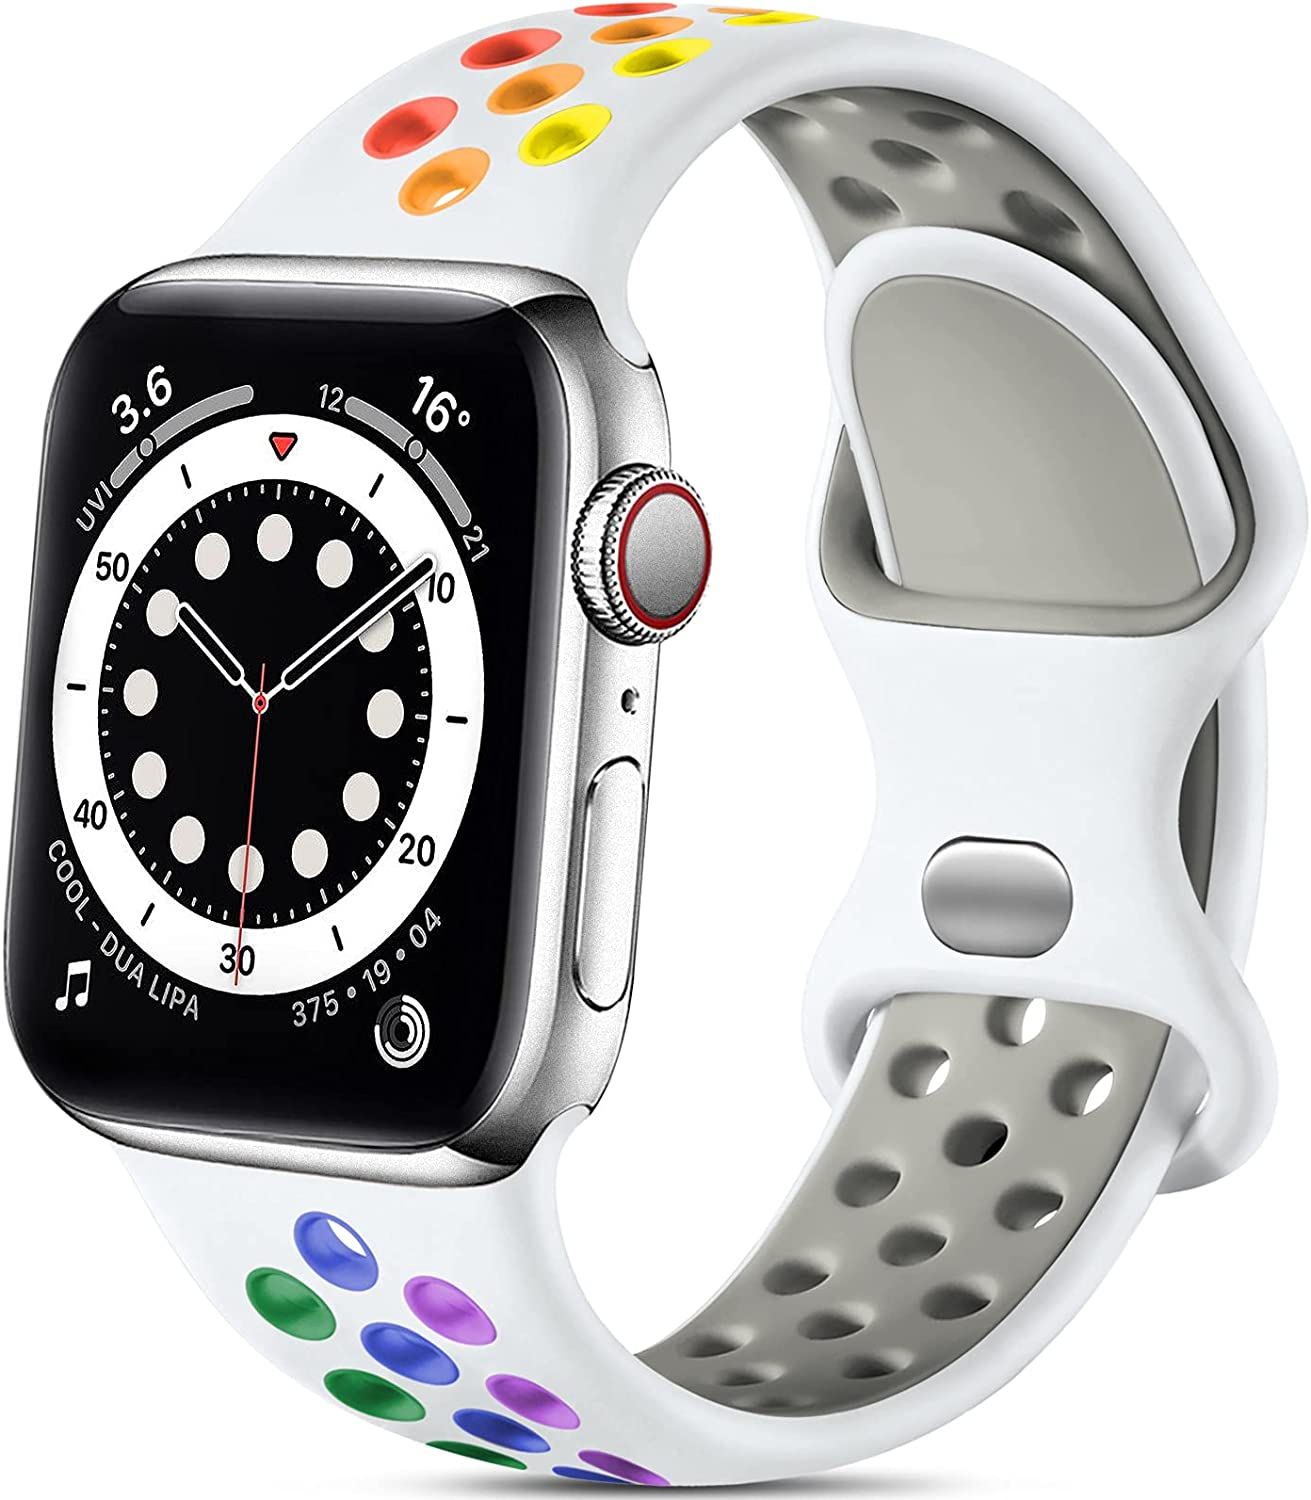 Lerobo Compatible with Apple Watch Bands 40mm 38mm, Sport Soft Silicone Wristbands Replacement Bands for Apple Watch SE & iWatch Series 6 5 4 3 2 1, Sport Edition Women Men, White/Rainbow, S/M